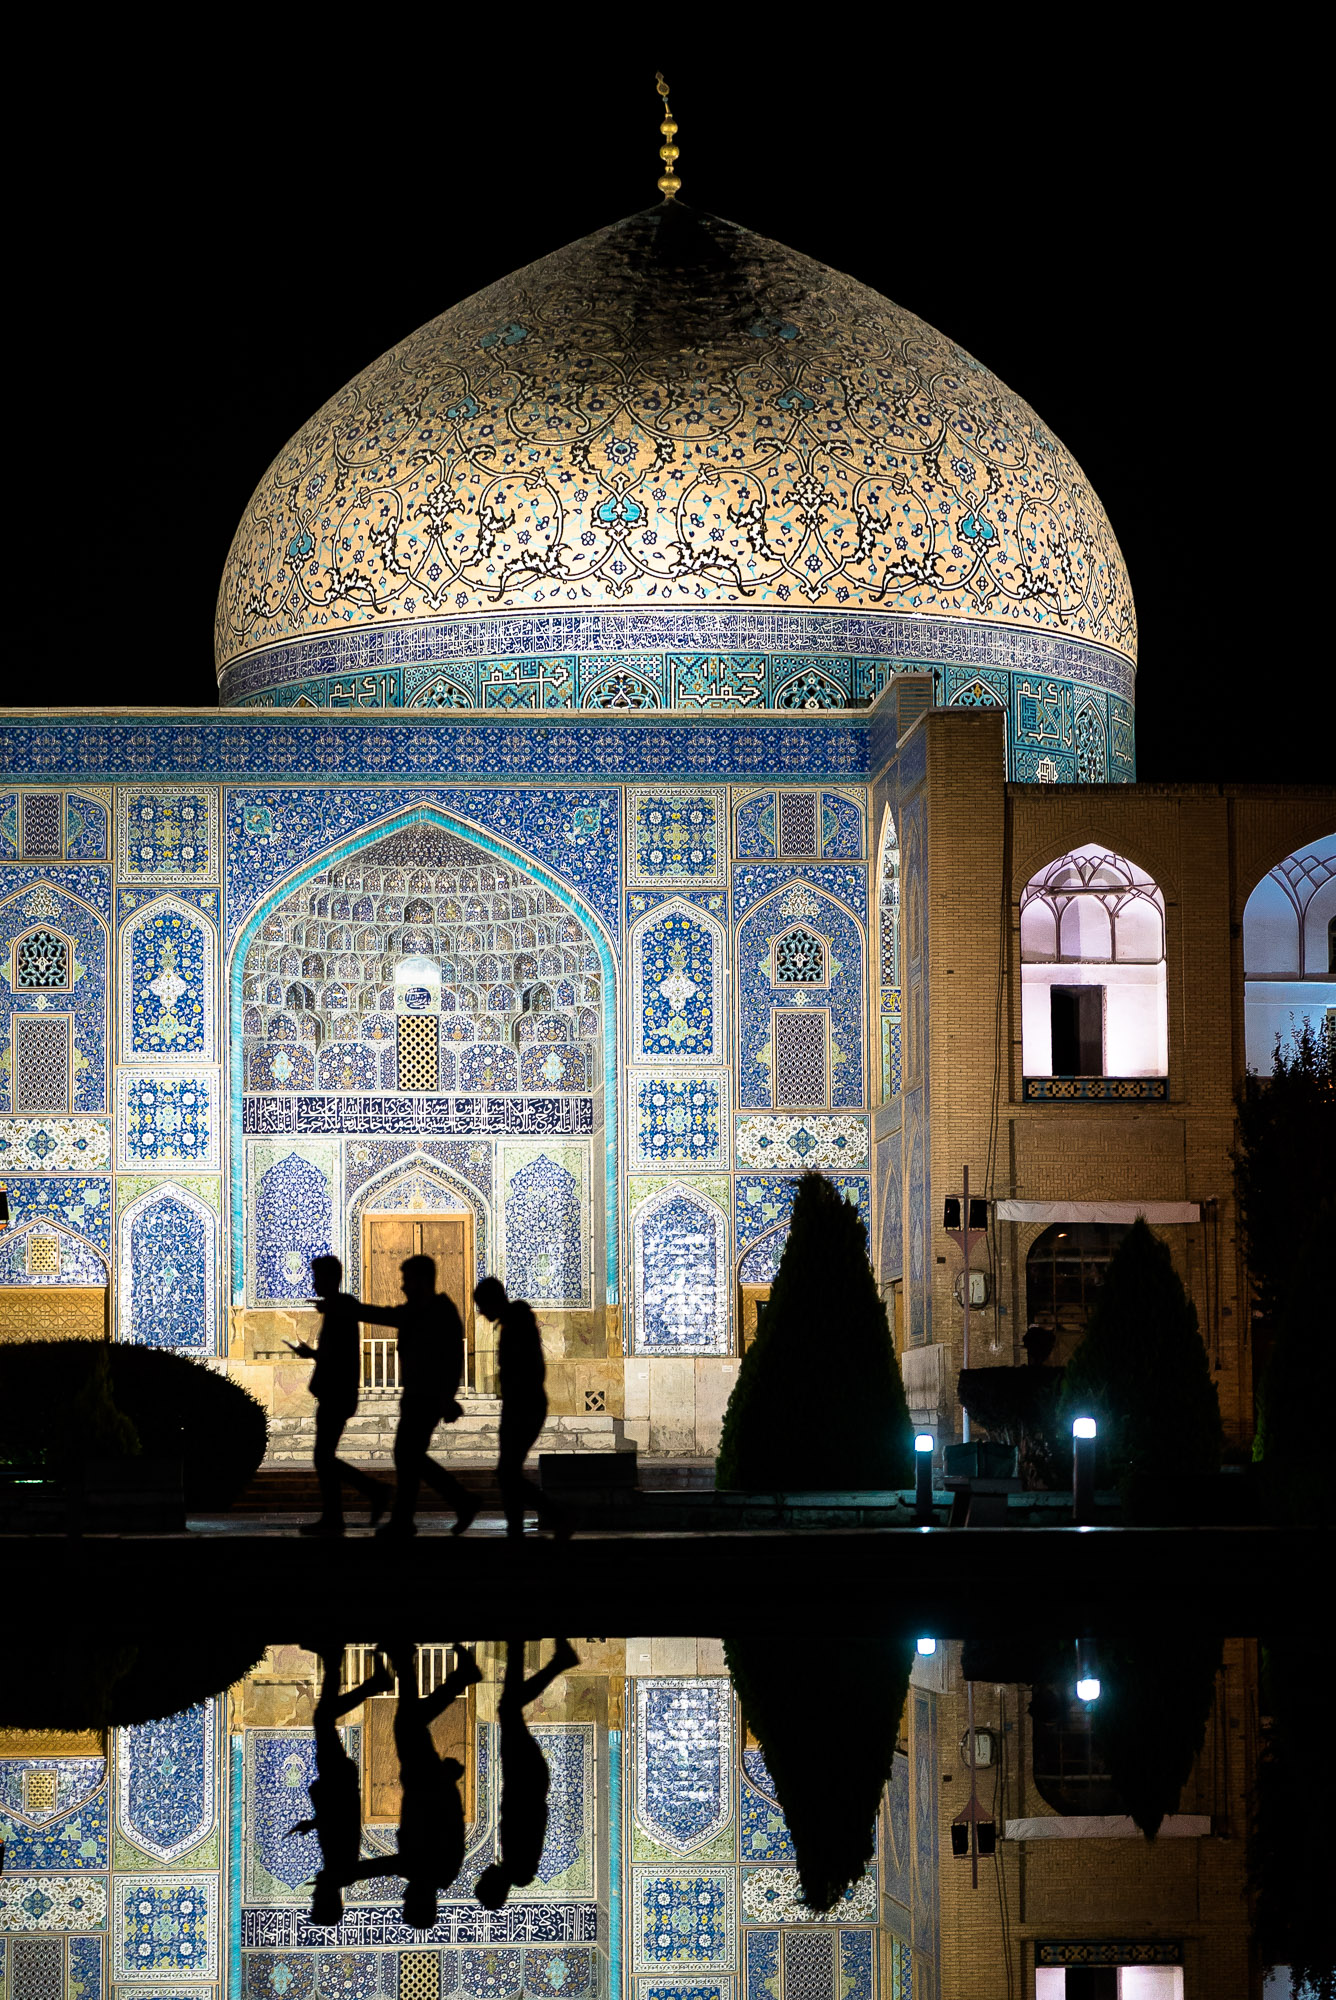 Sheikh Lotfollah Mosque at night